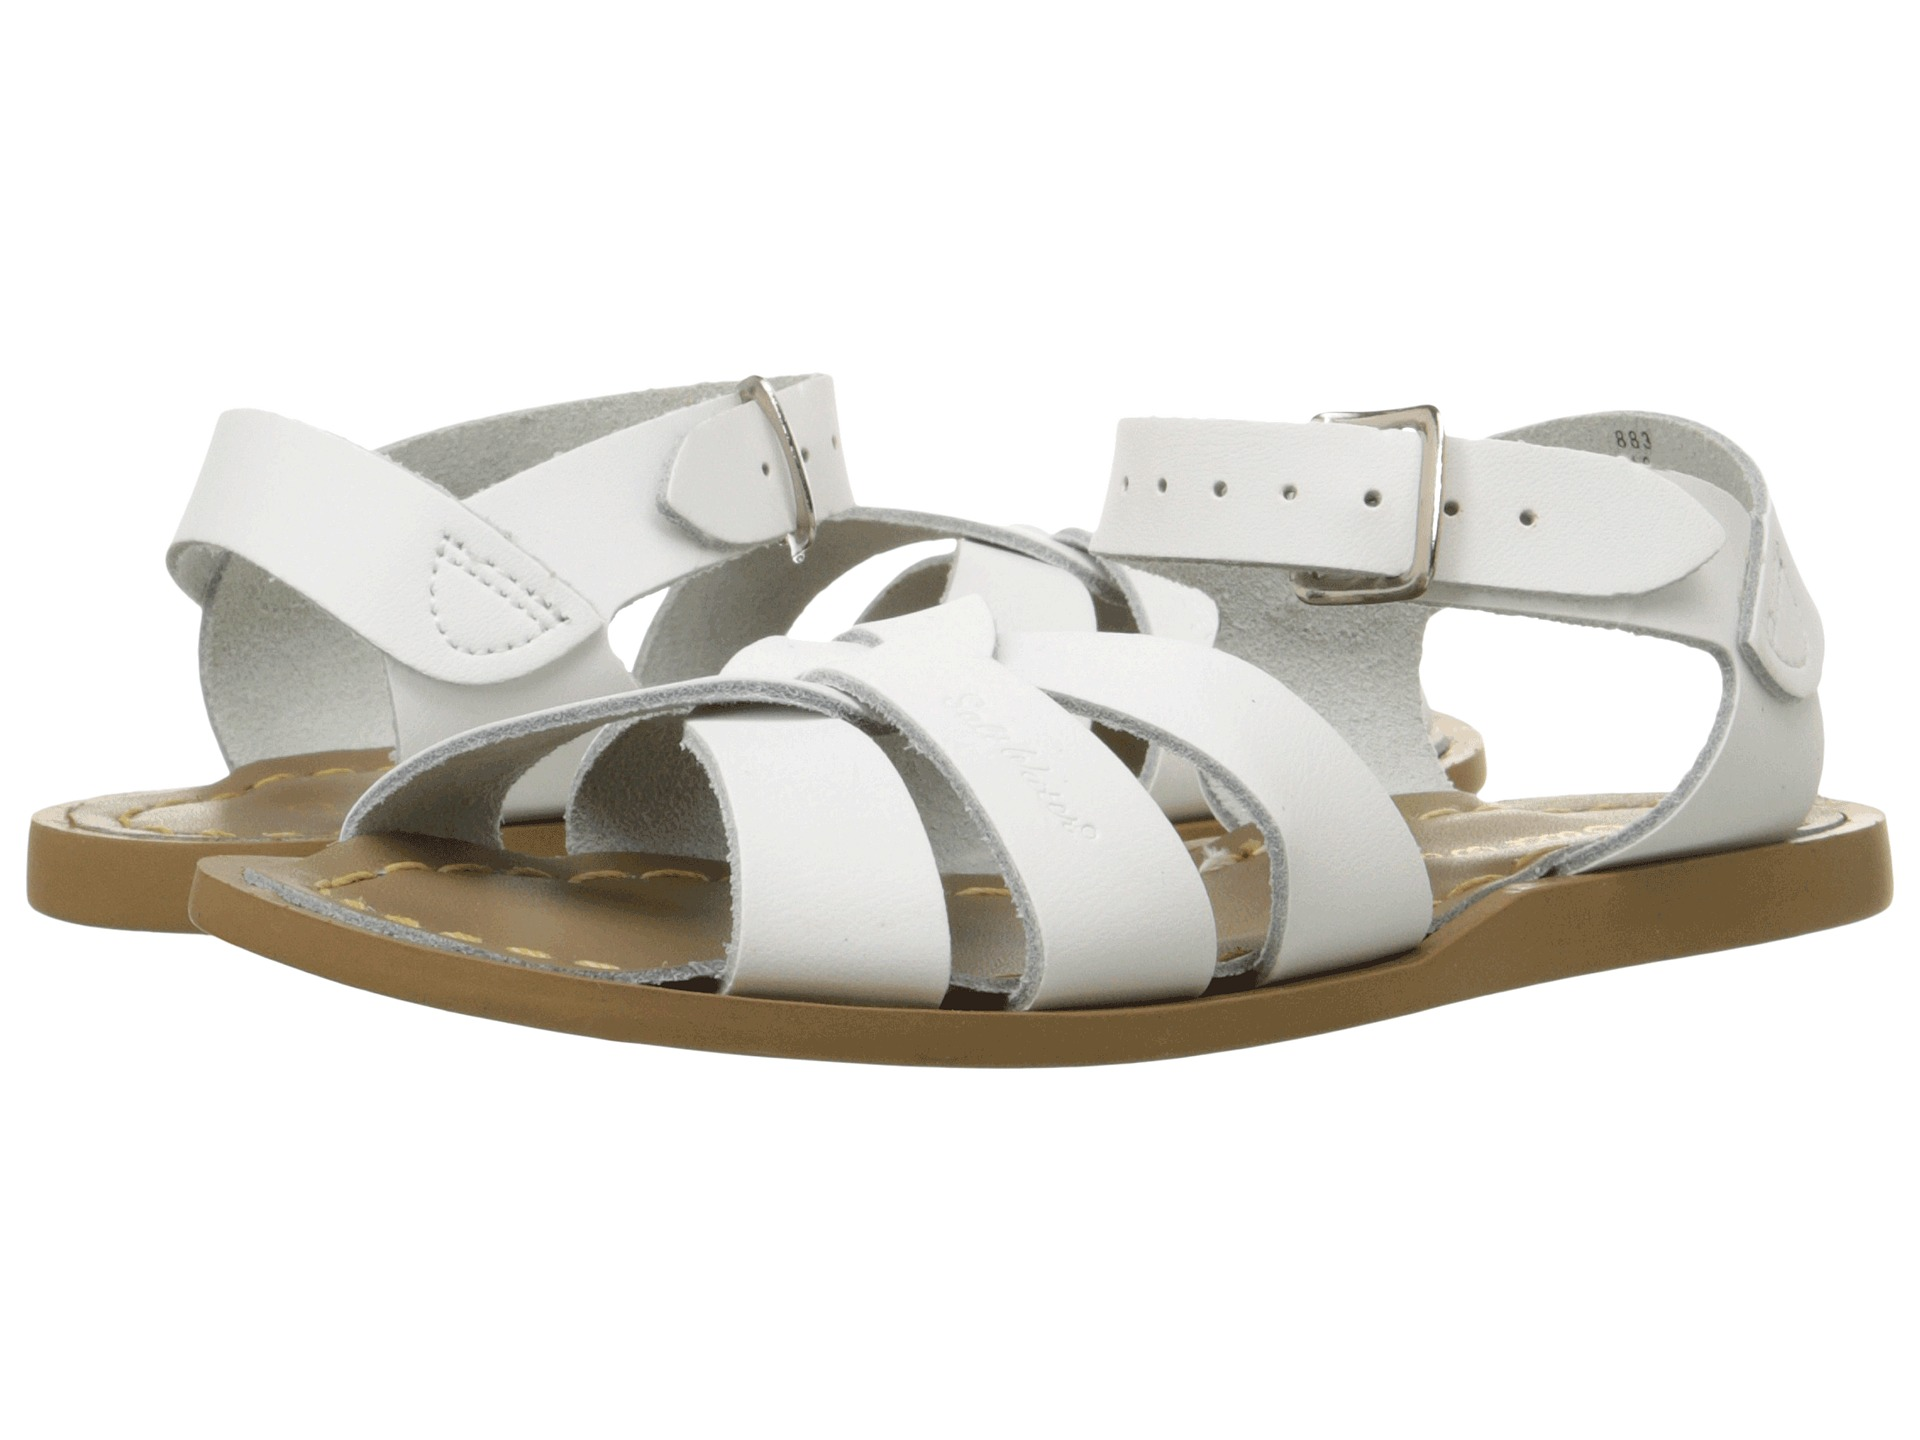 Model Salt Water Sandals Canada  The Original  Women